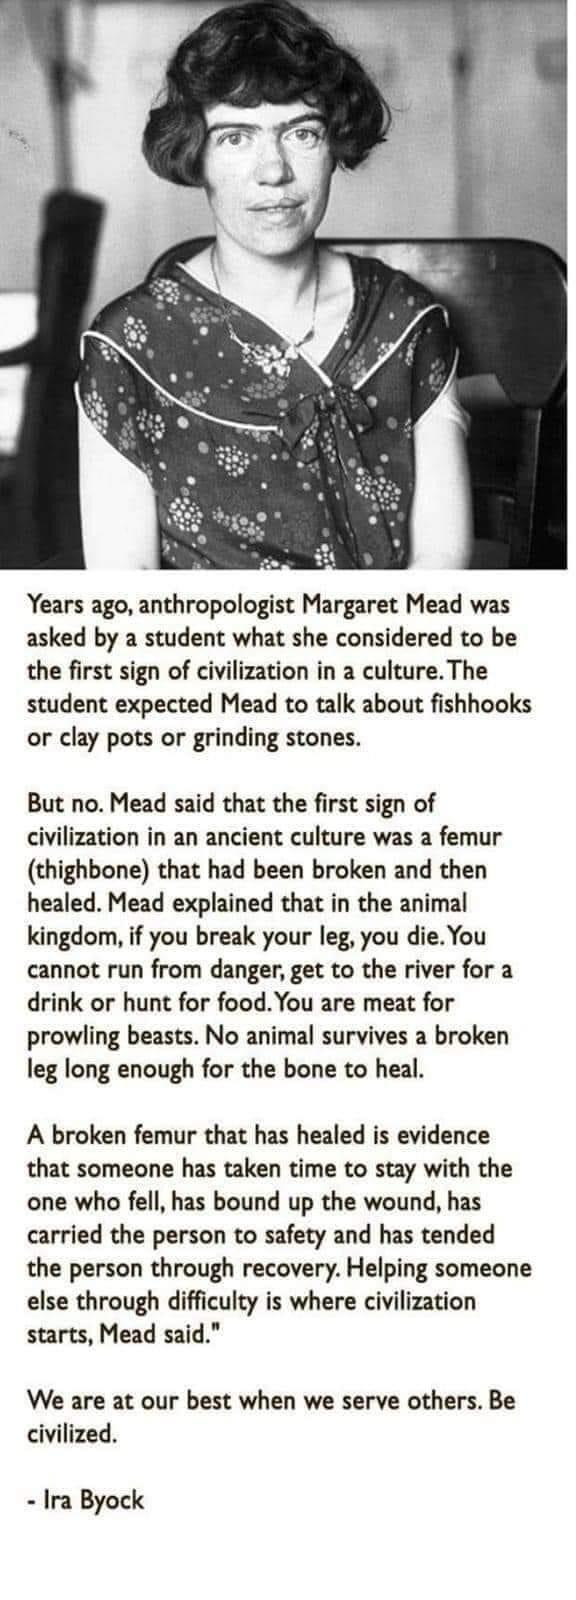 """Years ago, anthropologist Margaret Mead was asked by a student what she considered to be the first sign of civilization in a culture.The student expected Mead to talk about fishhooks or clay pots or grinding stones. But no. Mead said that the first sign of civilization in an ancient culture was a femur (thighbone) that had been broken and then healed. Mead explained that in the animal kingdom, if you break your leg, you die.You cannot run from danger. get to the river for a drink or hunt for food.You are meat for prowling beasts. No animal survives a broken leg long enough for the bone to heal. A broken femur that has healed is evidence that someone has taken time to stay with the one who fell, has bound up the wound. has carried the person to safety and has tended the person through recovery. Helping someone else through difficulty is where civilization starts. Mead said."""" We are at our best when we serve others. Be civilized. - https://inspirational.ly"""